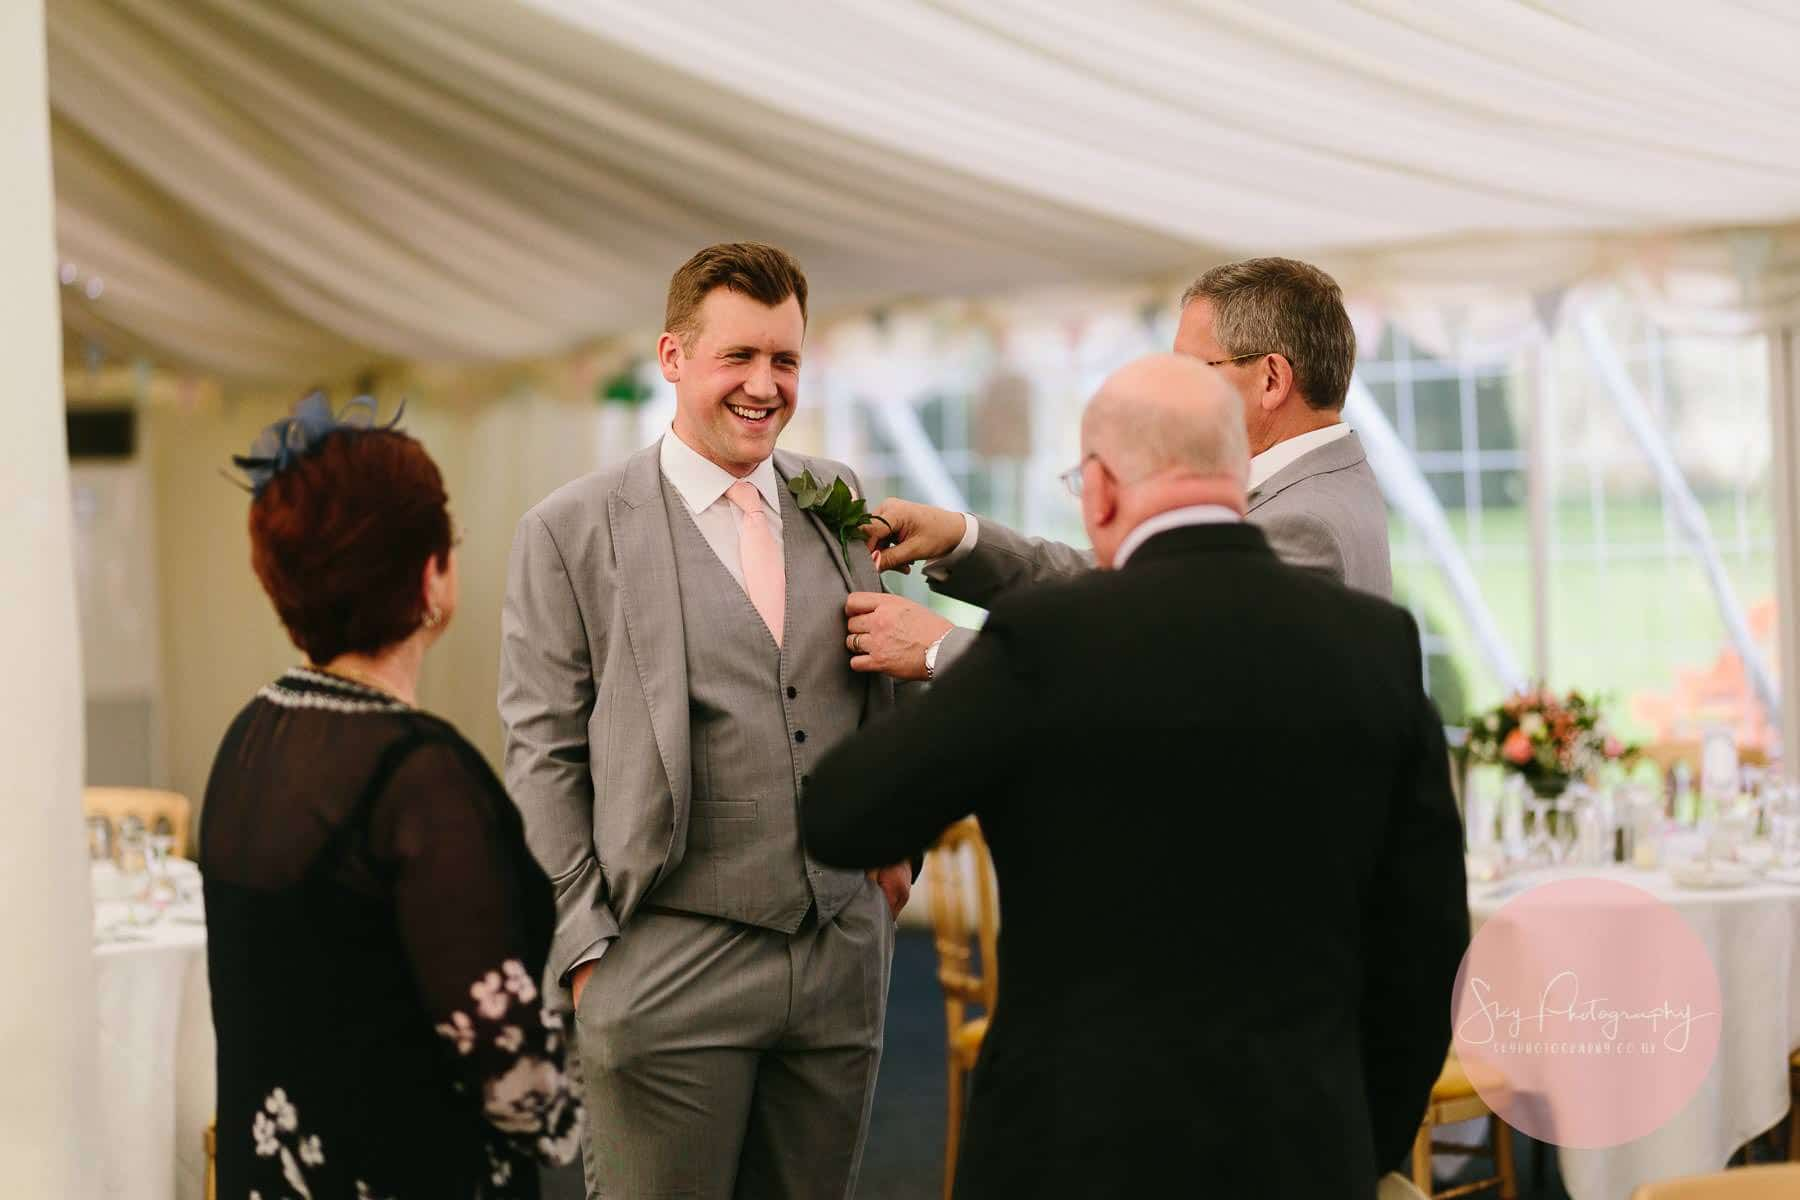 Groom's brother talking with guests